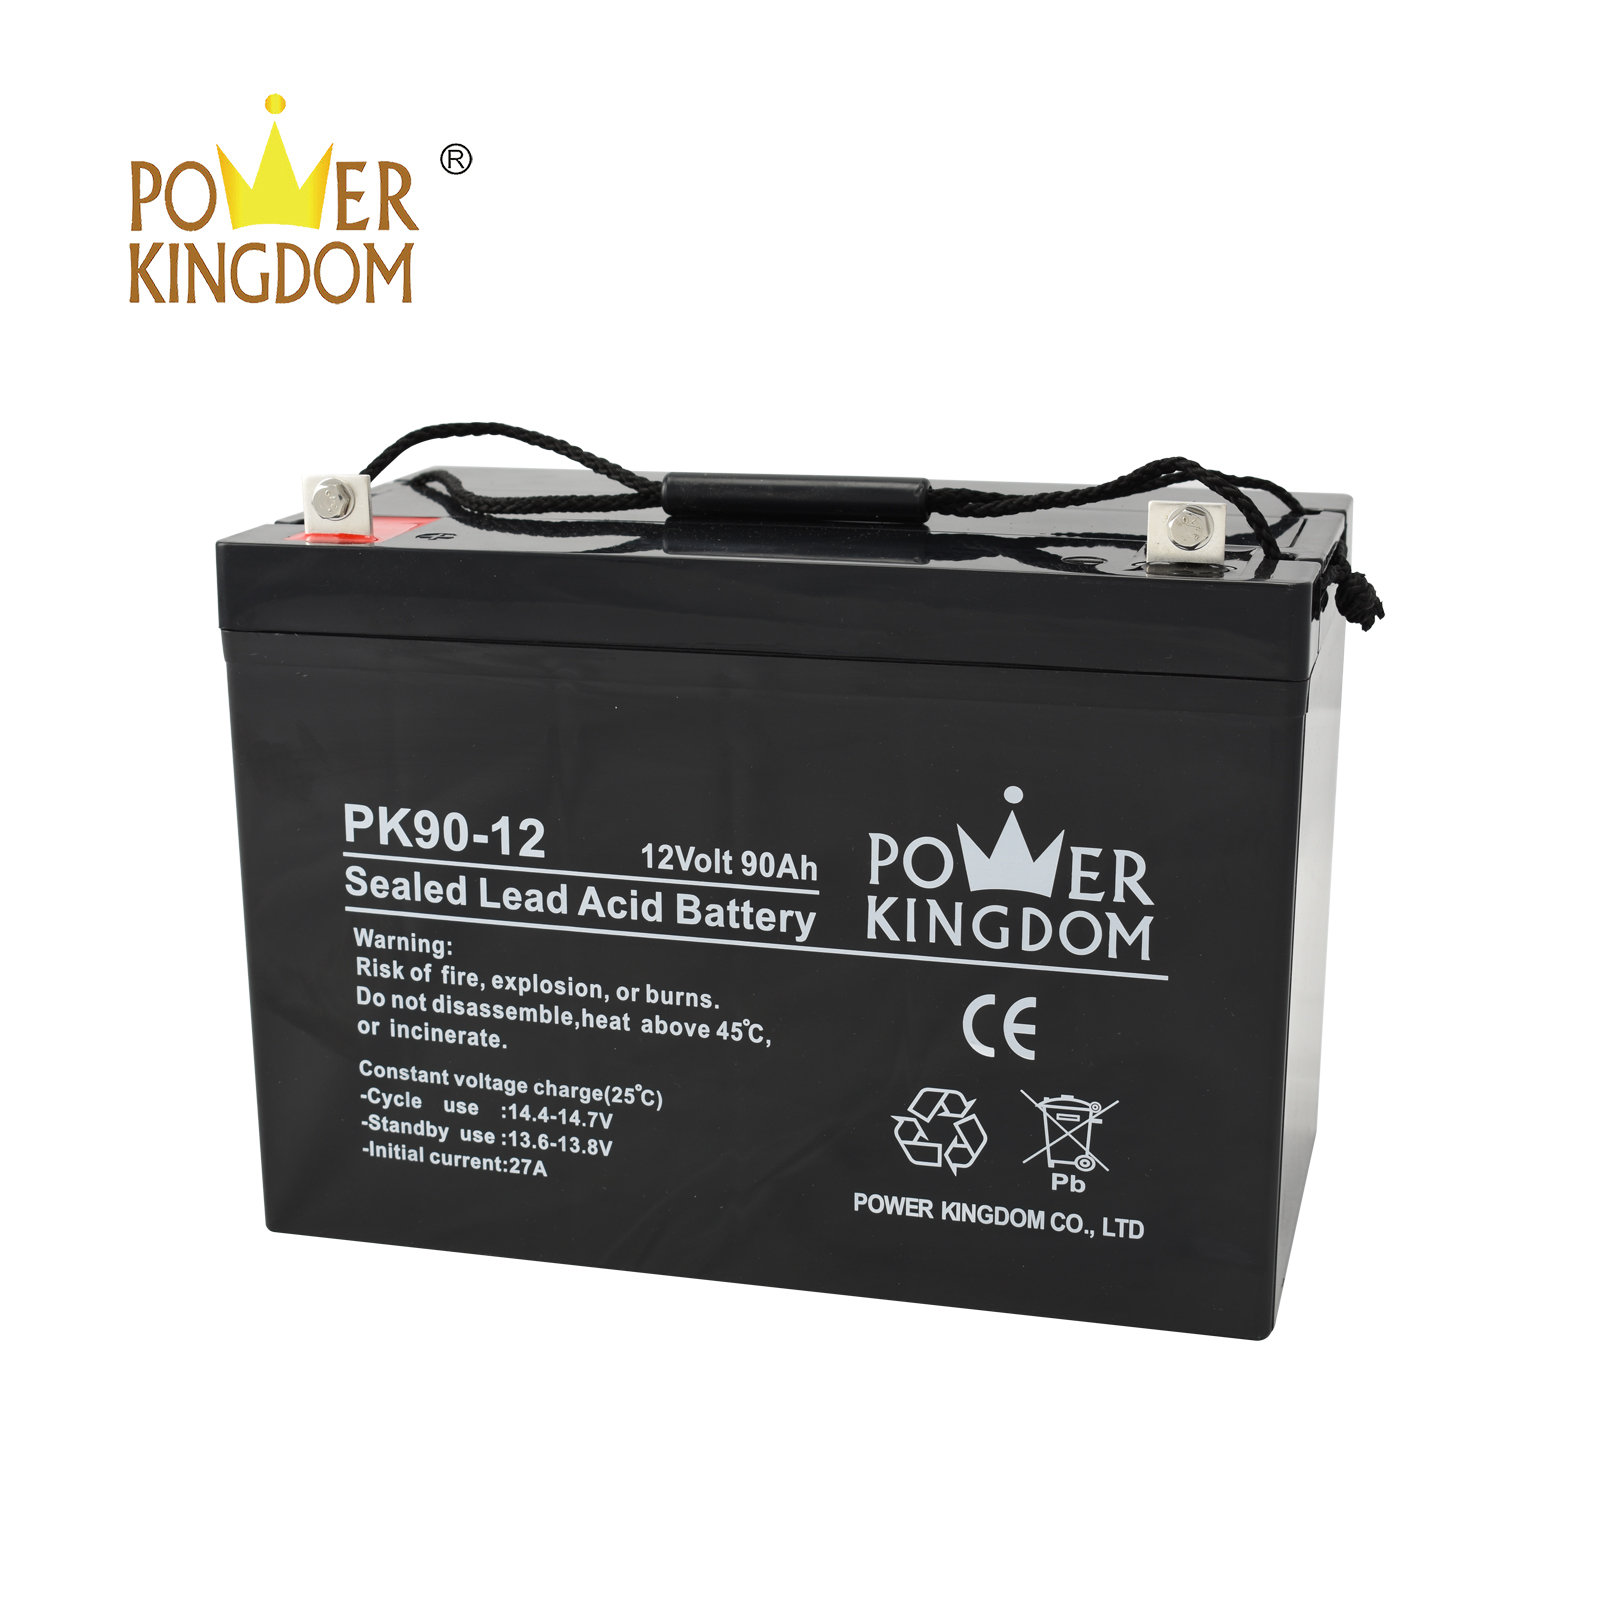 Power Kingdom advanced plate casters gel battery charging voltage factory price Automatic door system